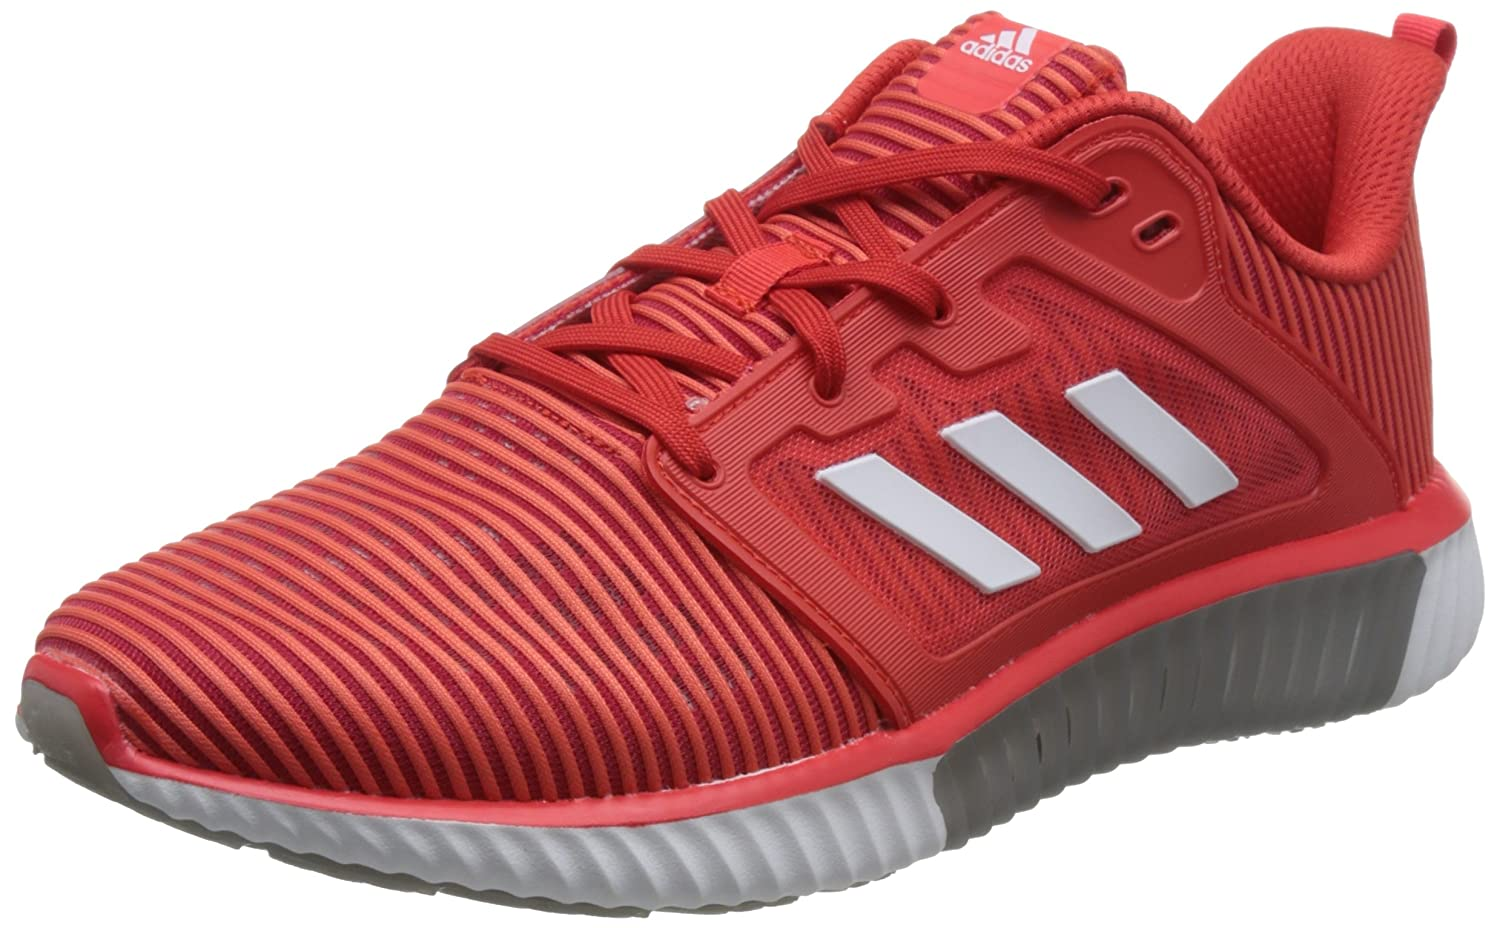 free shipping fbb78 26a65 adidas Men's Climacool Vent M, HIRE RED/Footwear White ...